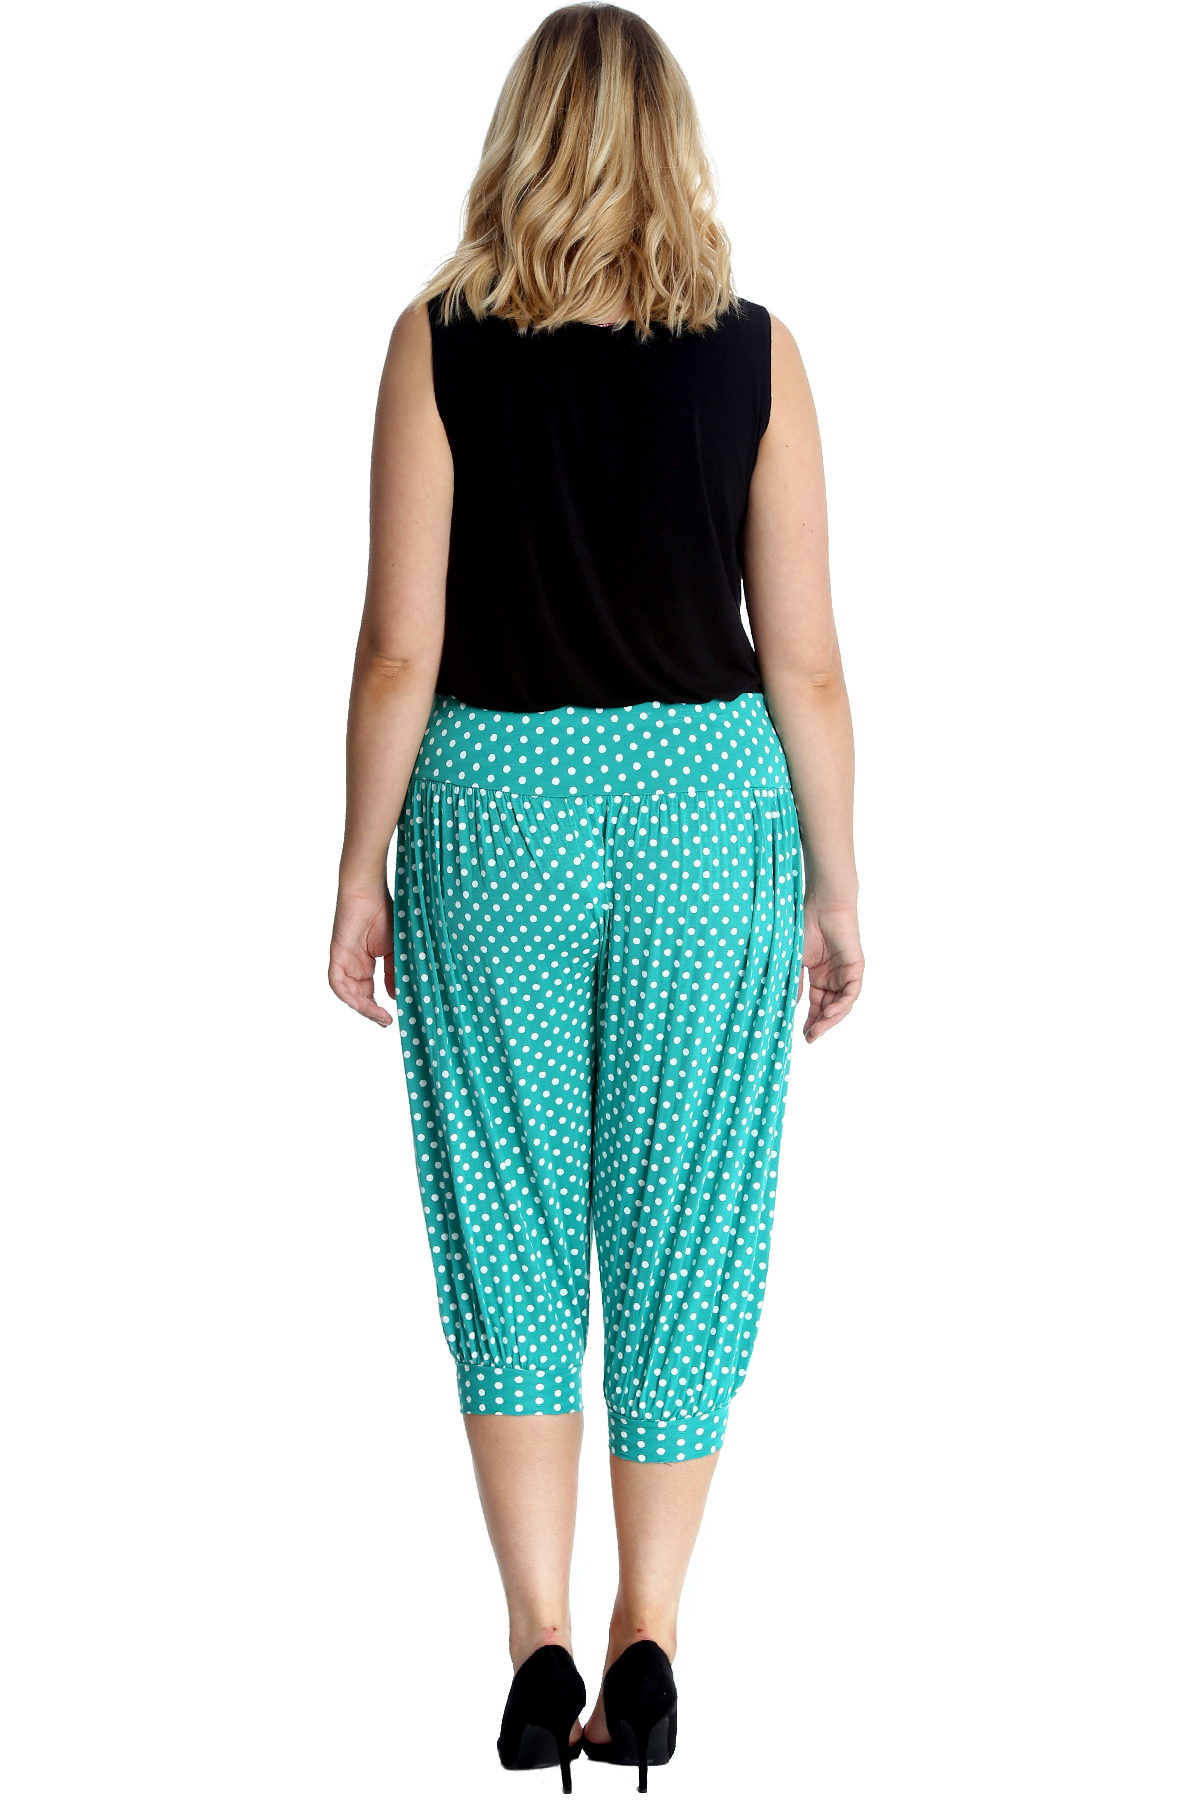 New Ladies Harem Trouser Women Plus Size Flared Ali Baba Moroccan Print Nouvelle